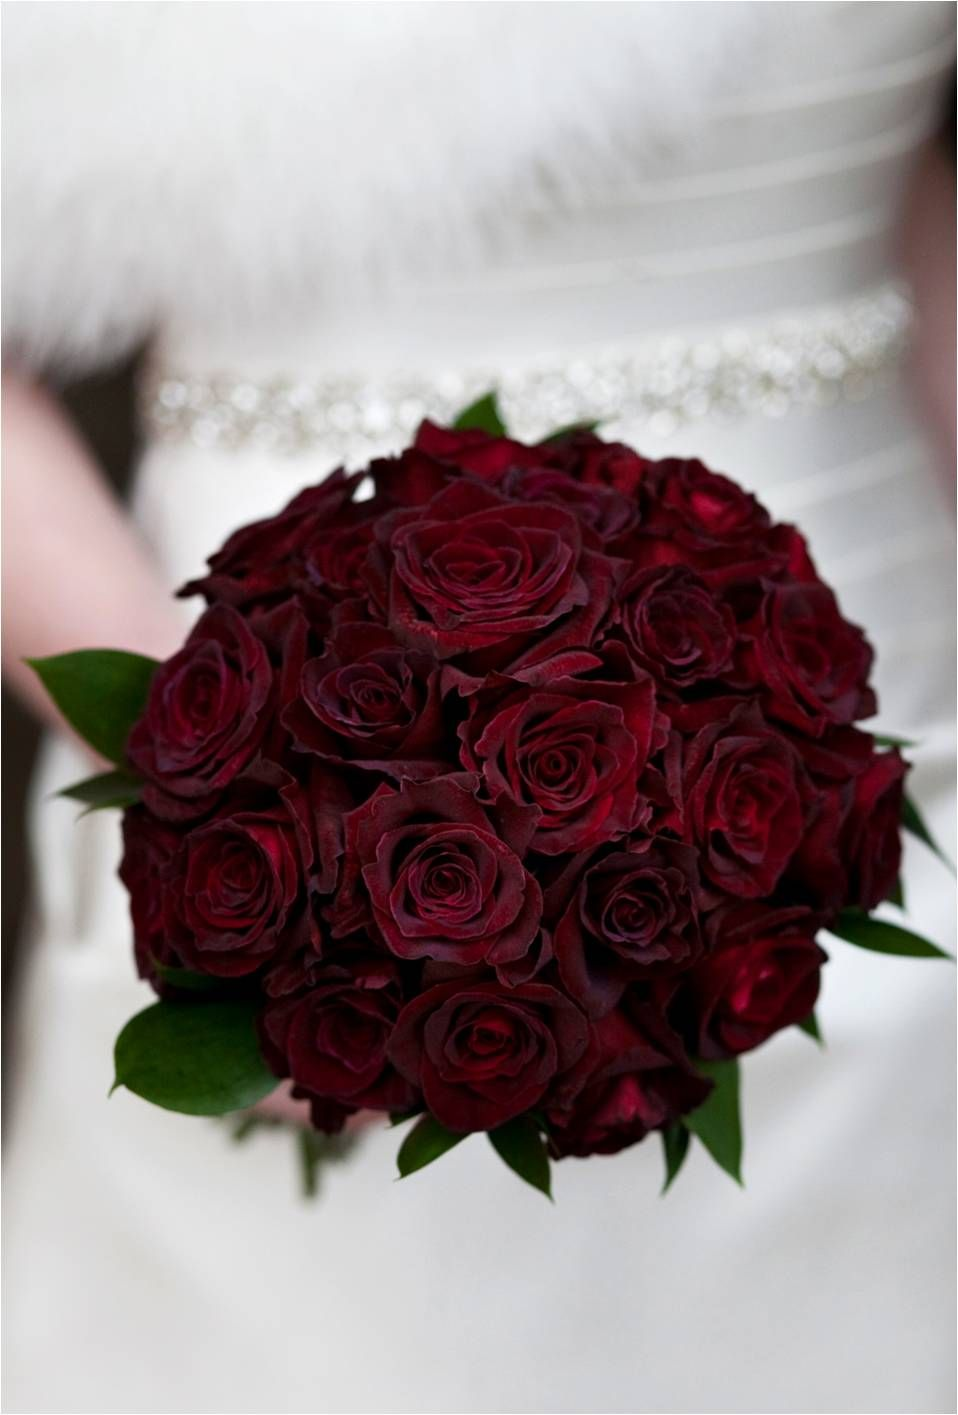 Dark red rose wedding bouquet bridal bouquets and for A lot of different flowers make a bouquet